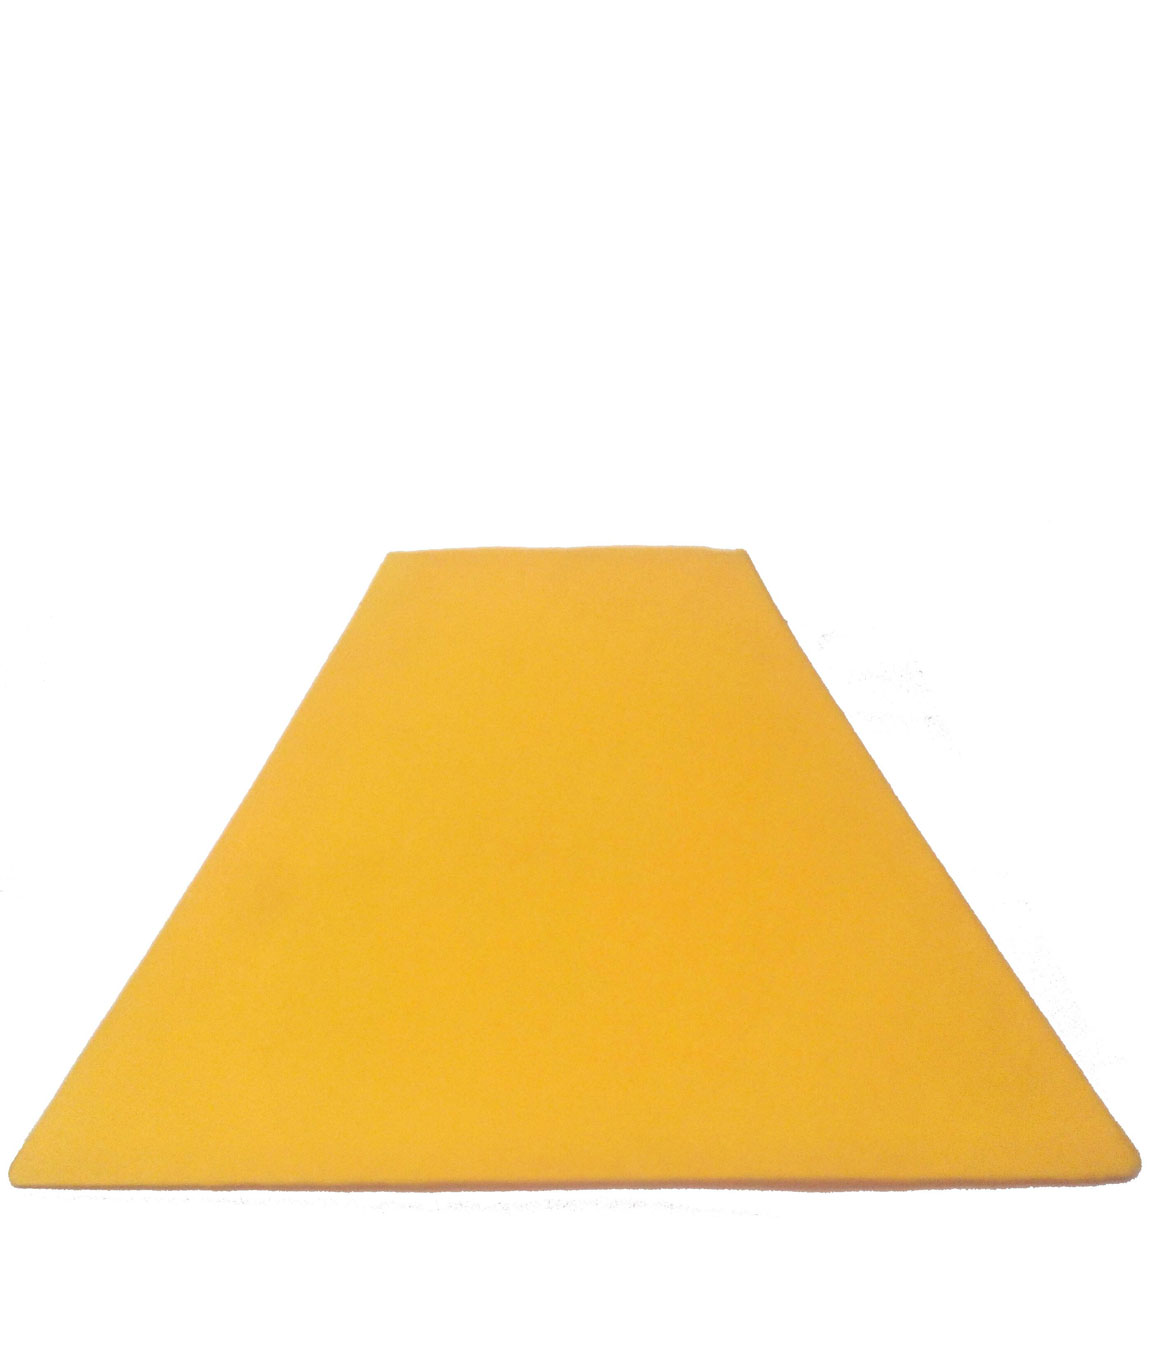 RDC 10 Inches Square Plain Yellow Lamp Shade for Table Lamp